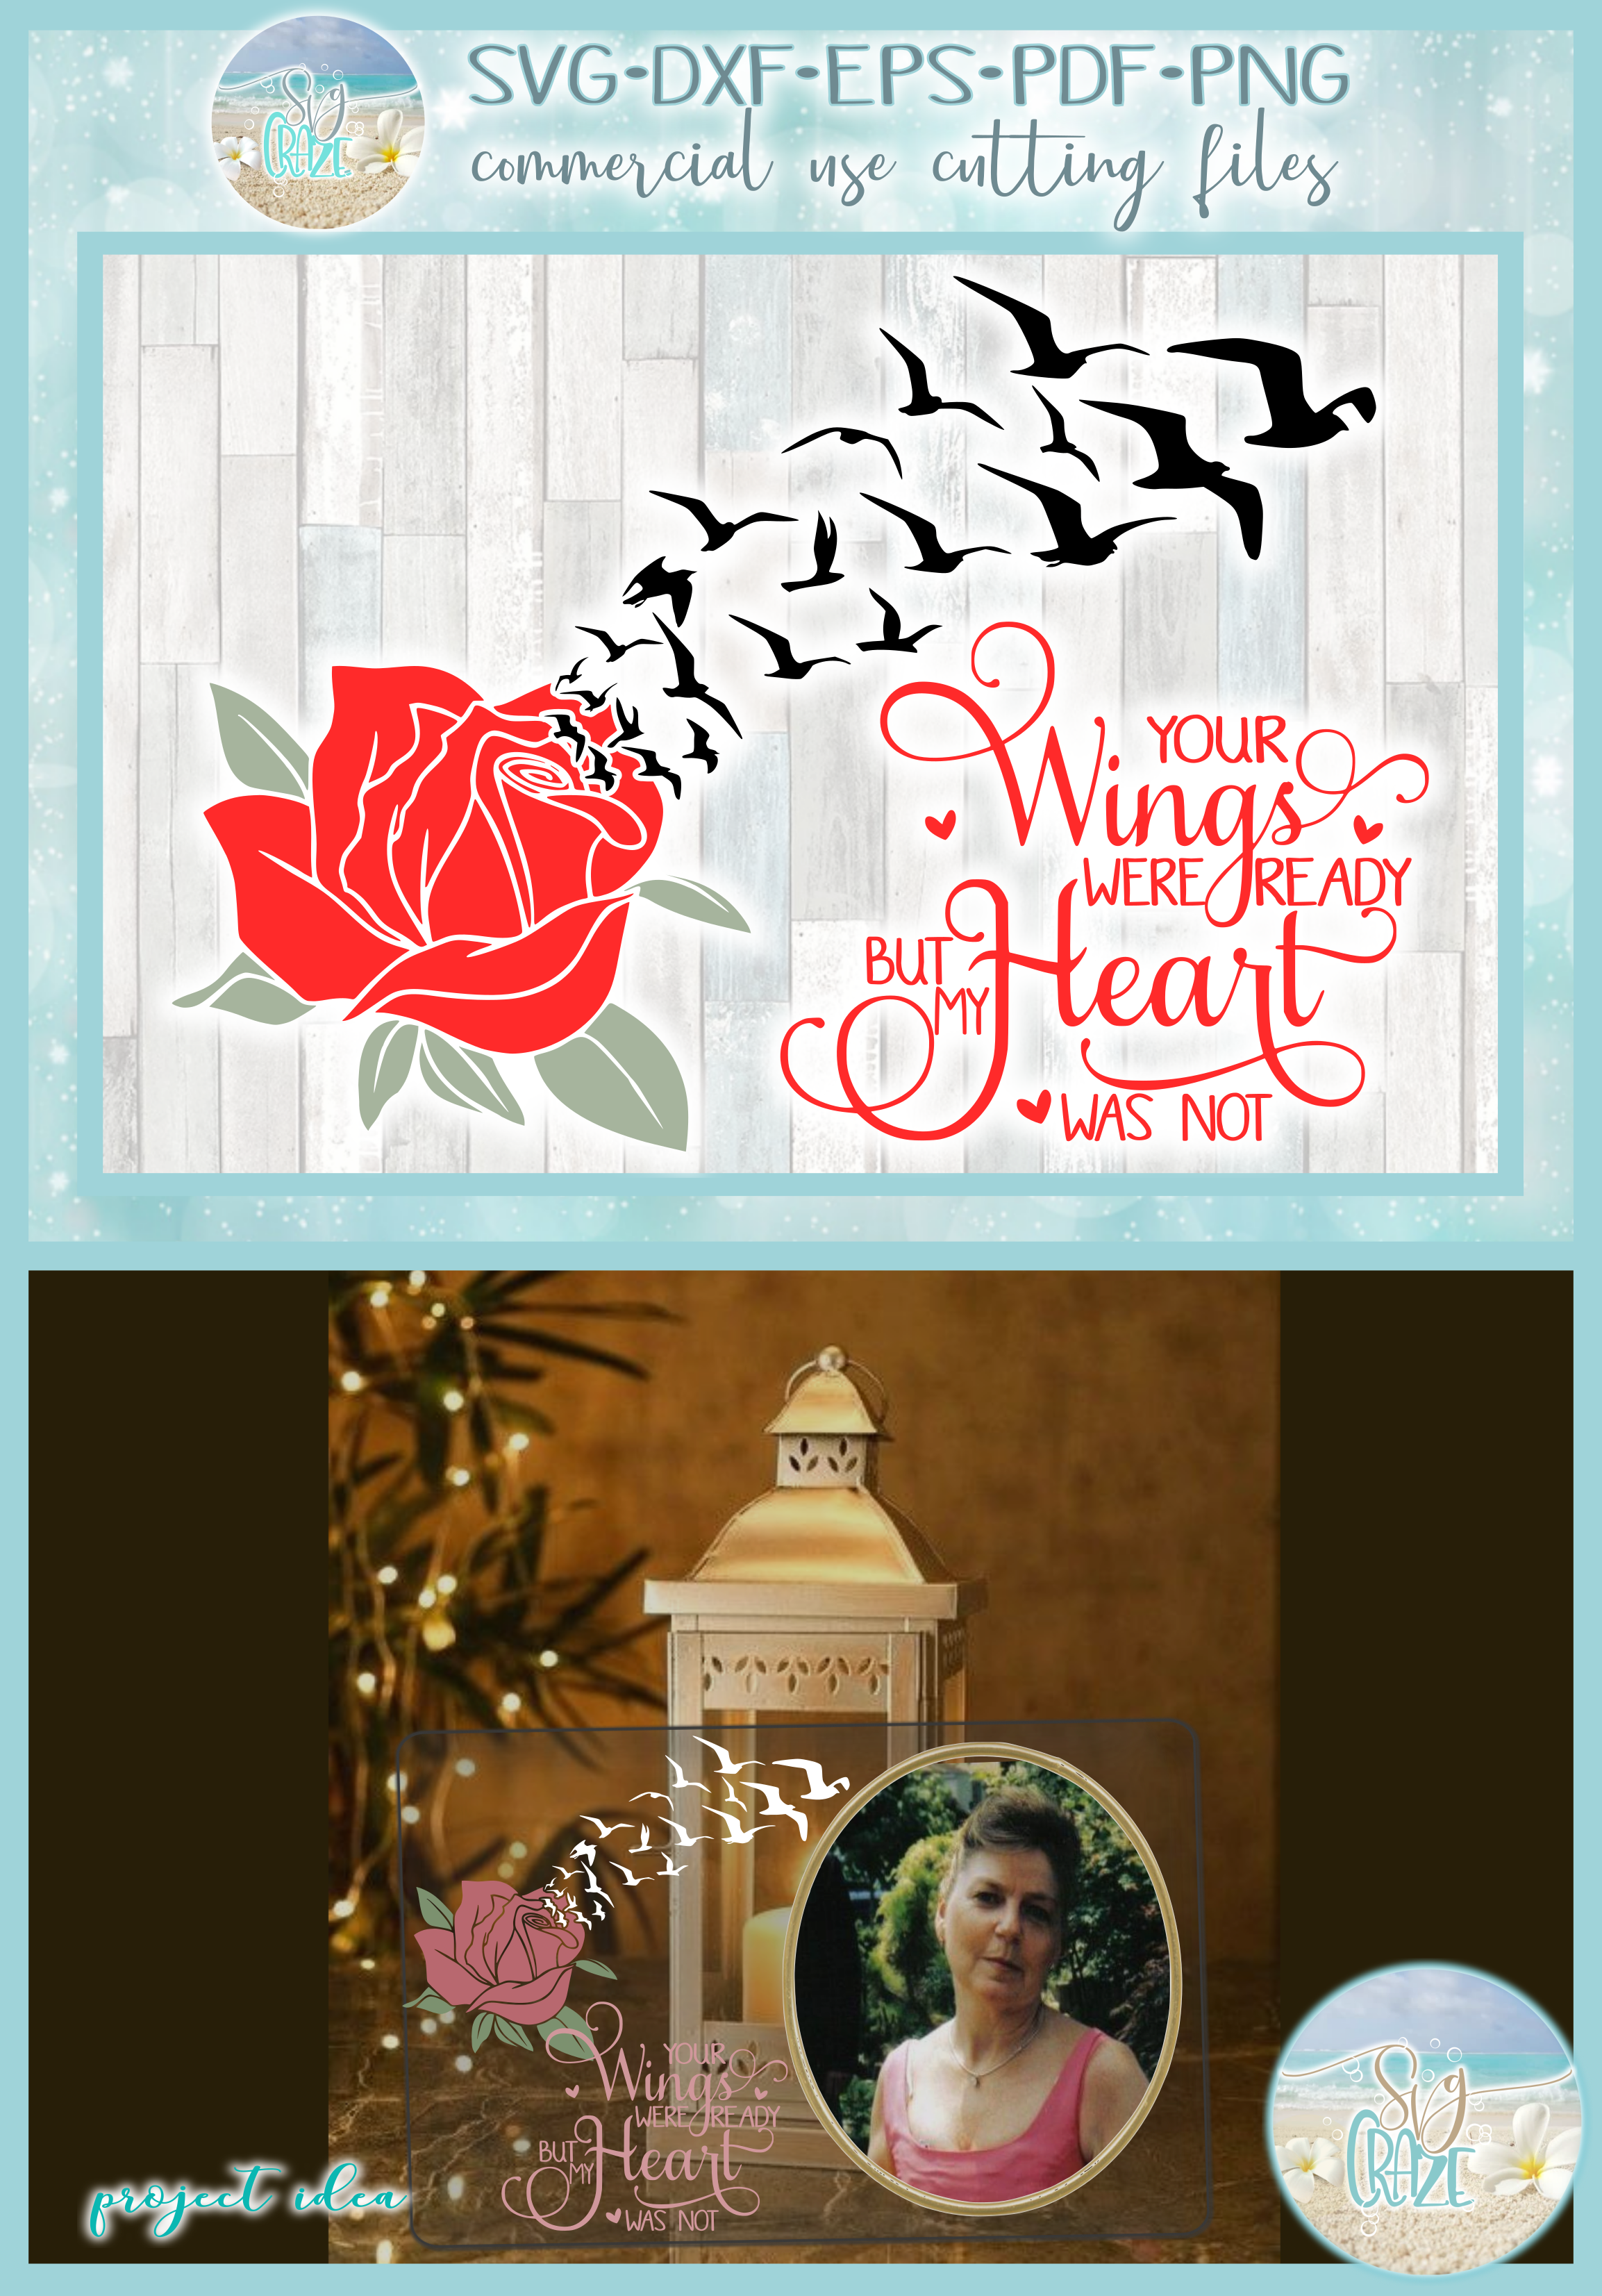 Your Wings Were Ready But My Heart Was Not with Rose SVG example image 4